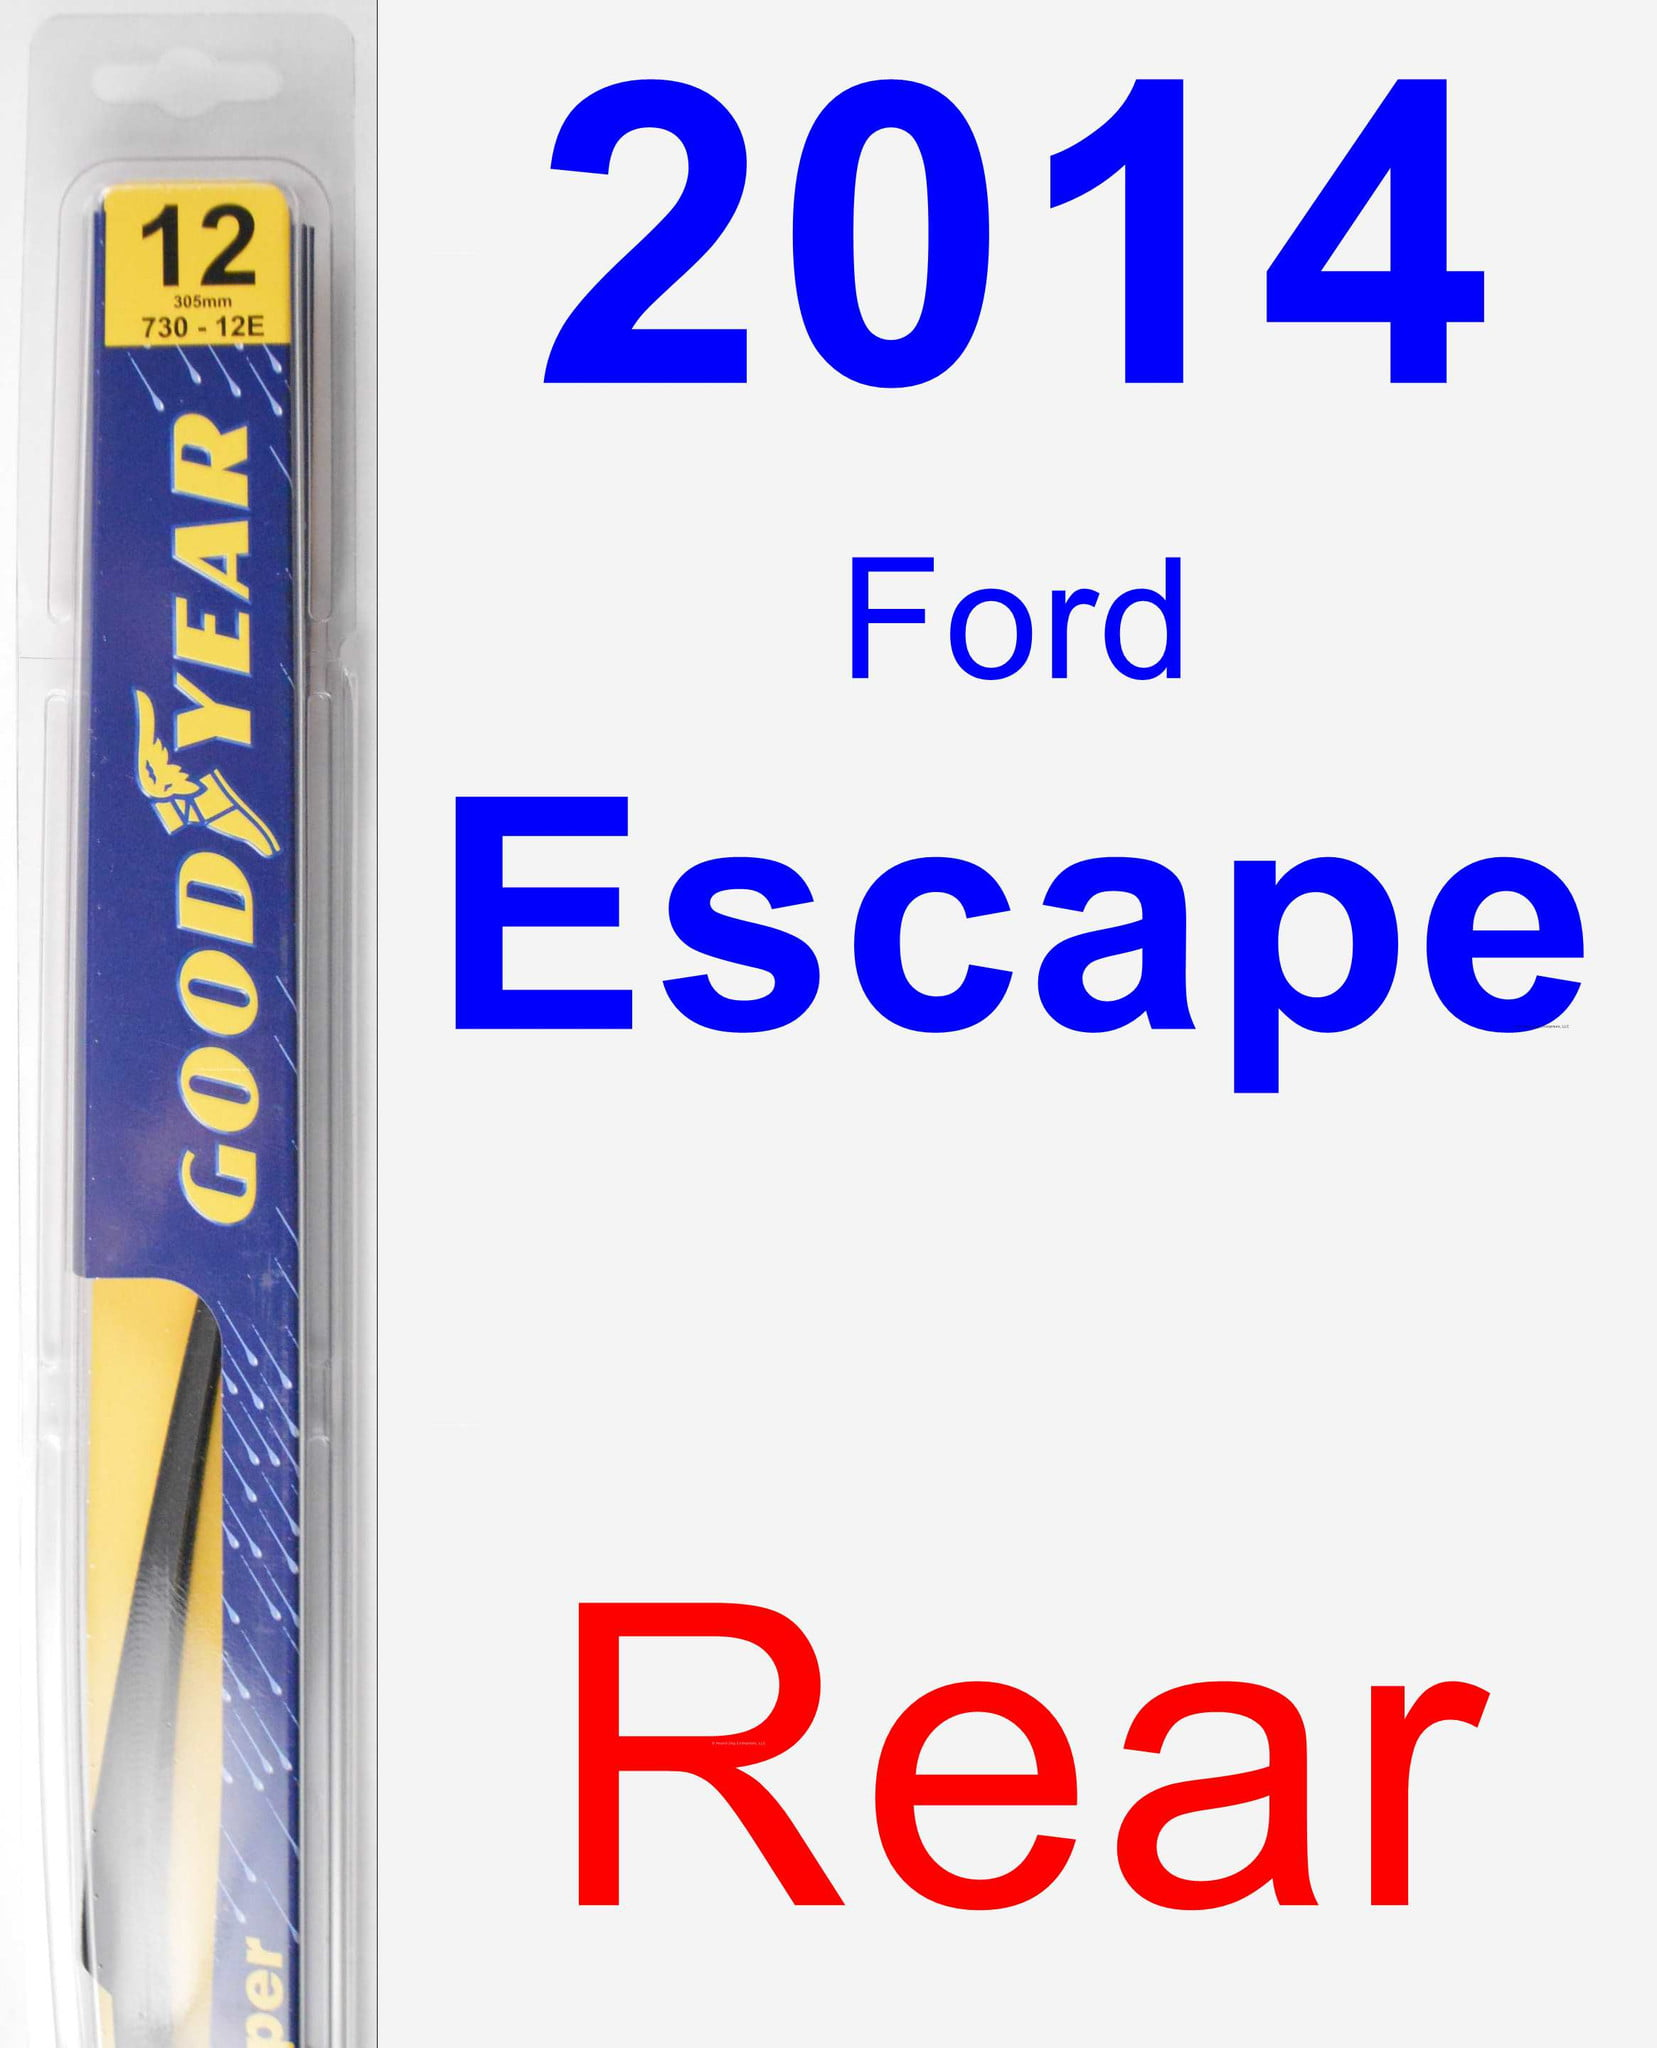 2014 Ford Escape Rear Wiper Blade Paint Color Chart